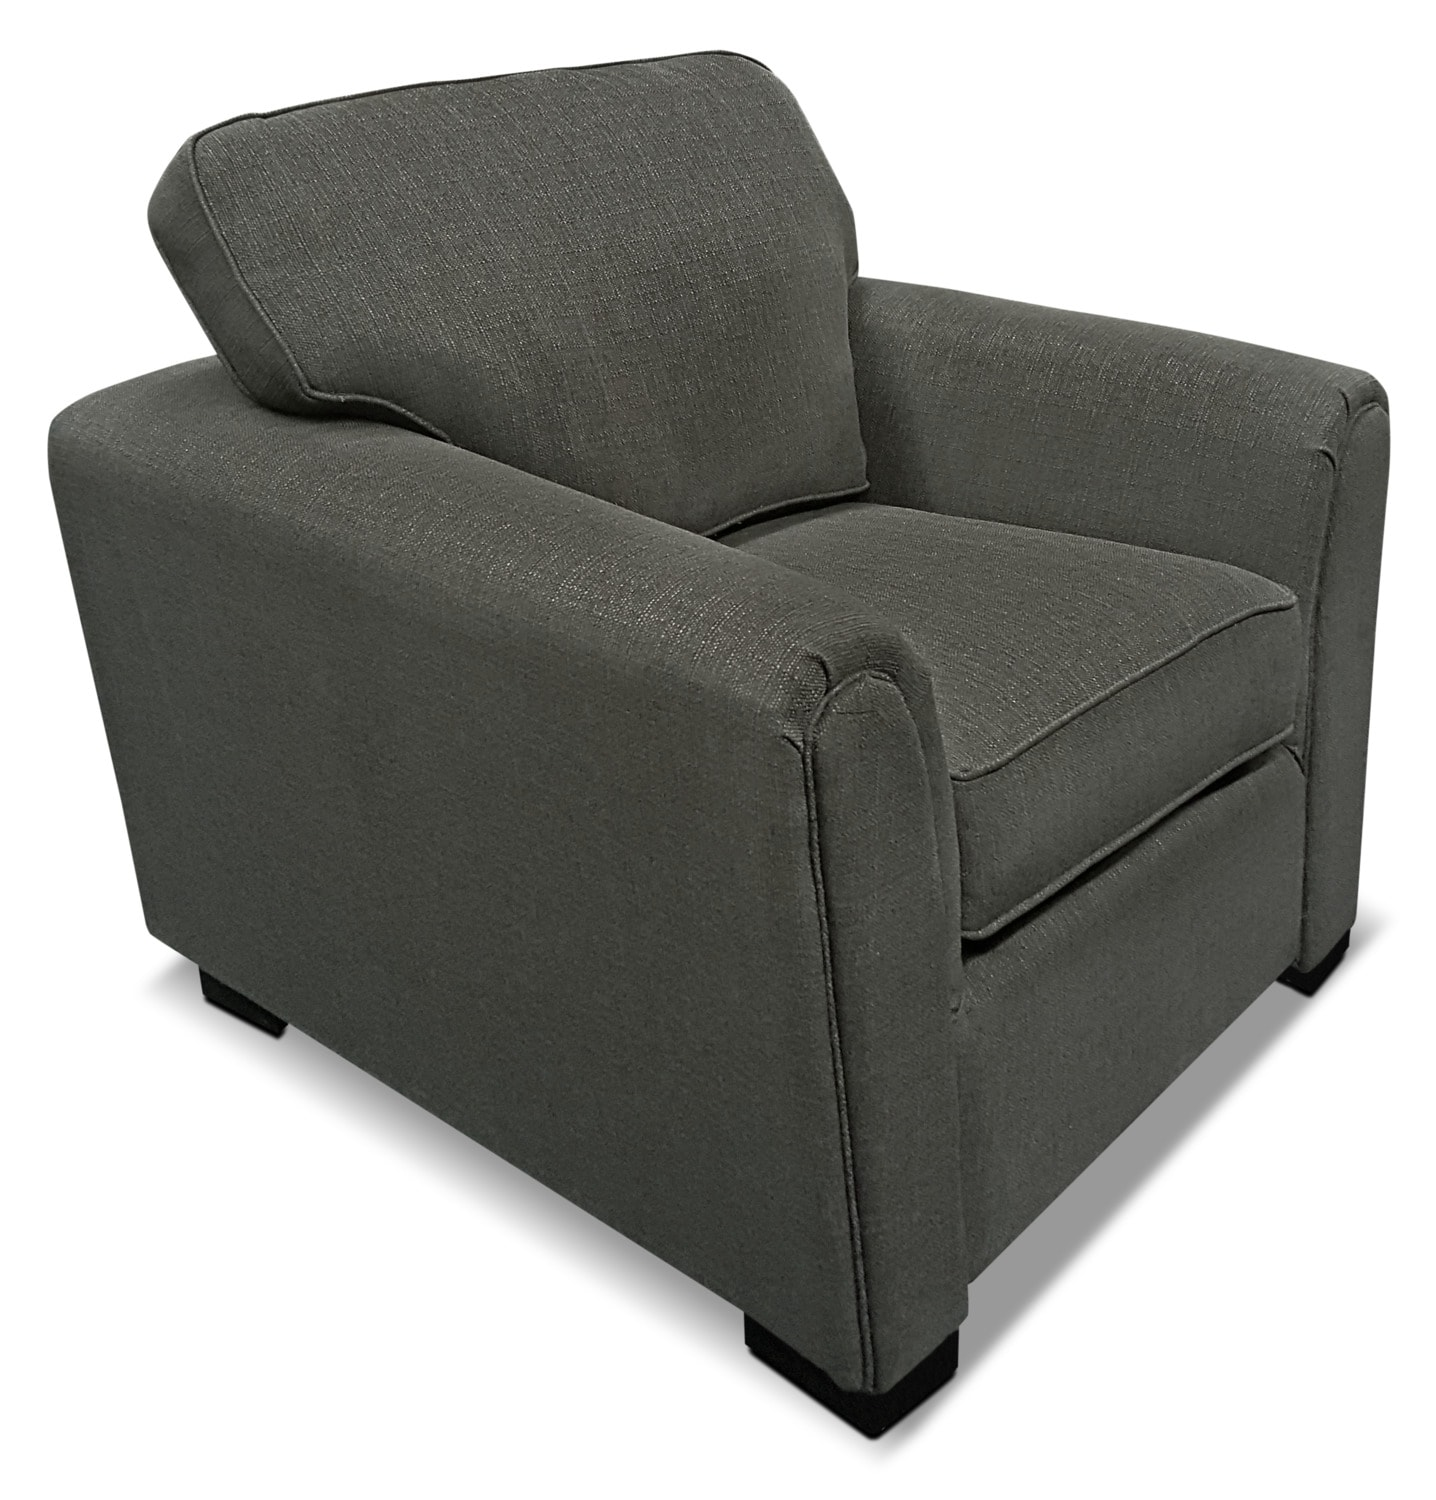 Living Room Furniture - Brynn Linen-Look Fabric Chair – Grey